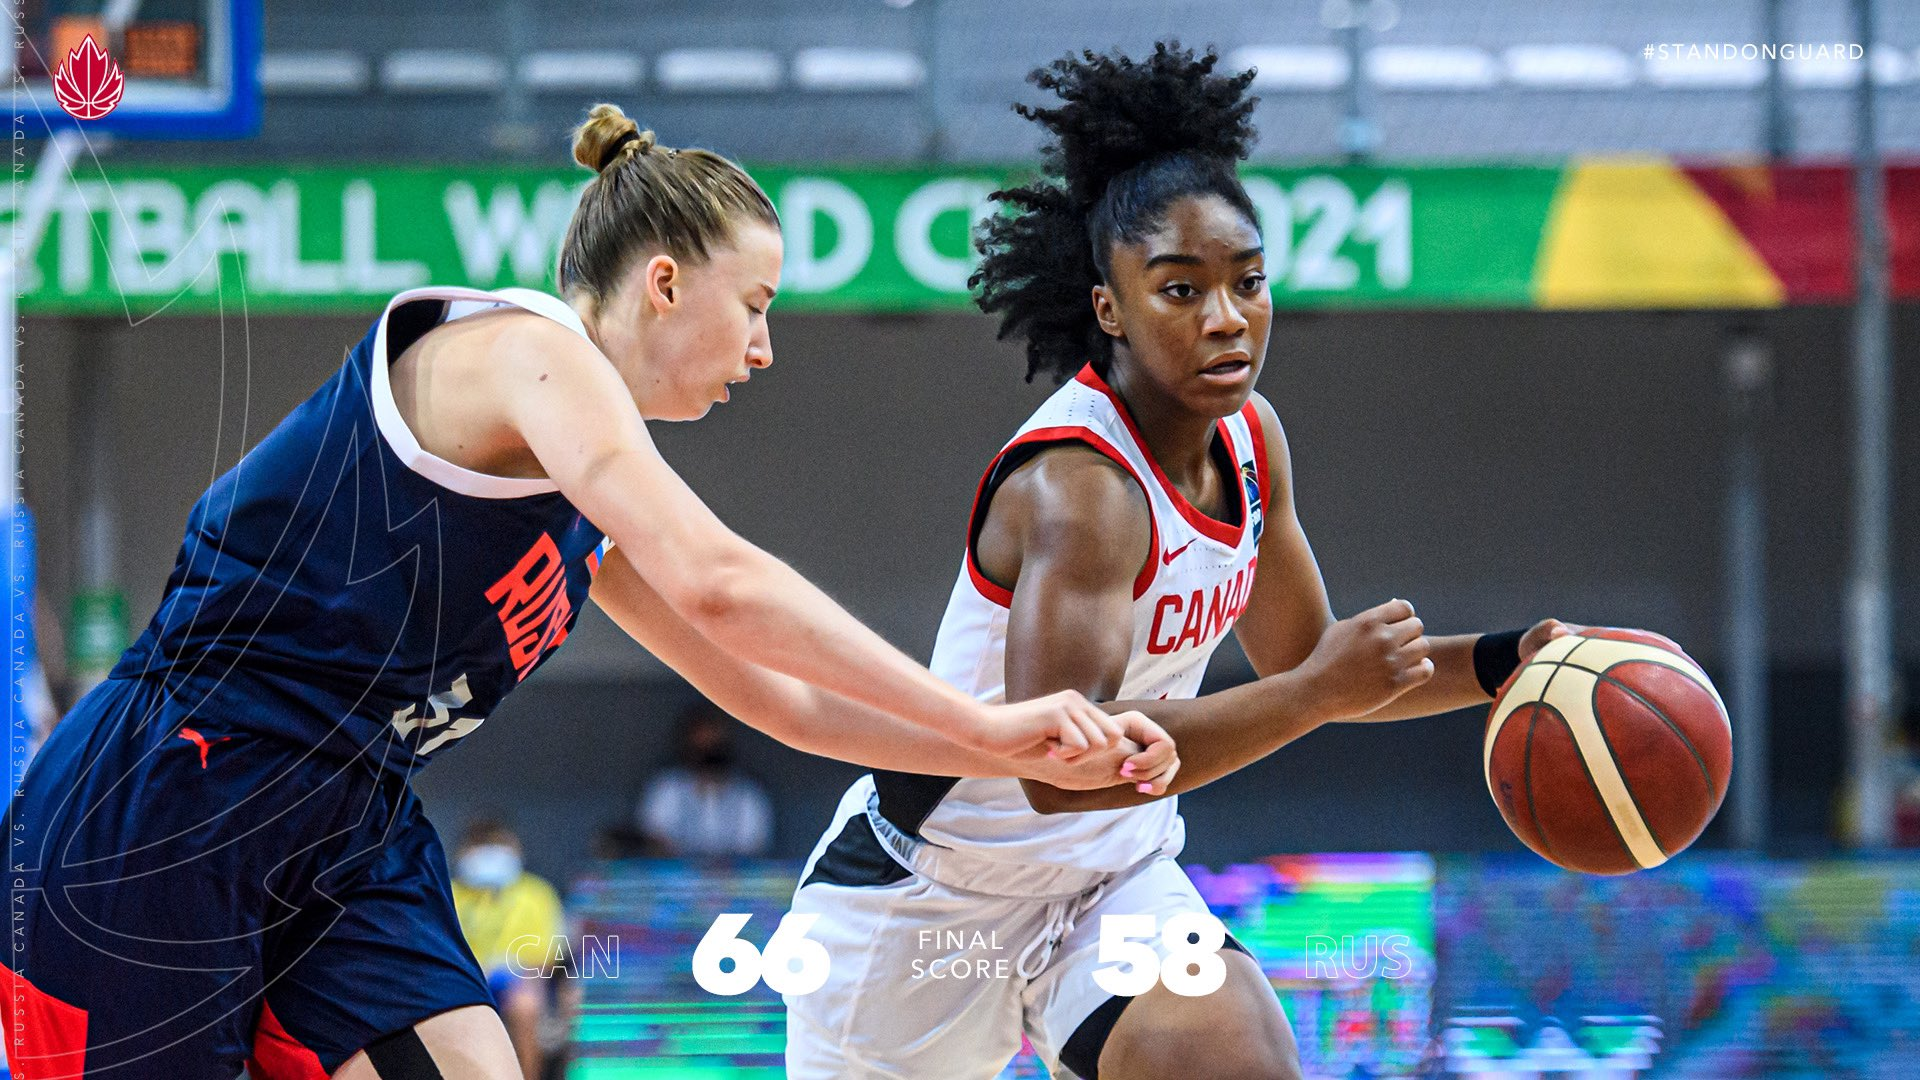 Canada downs Russia 66-58 and will play for 5th place at the FIBA U19 Women's World Cup